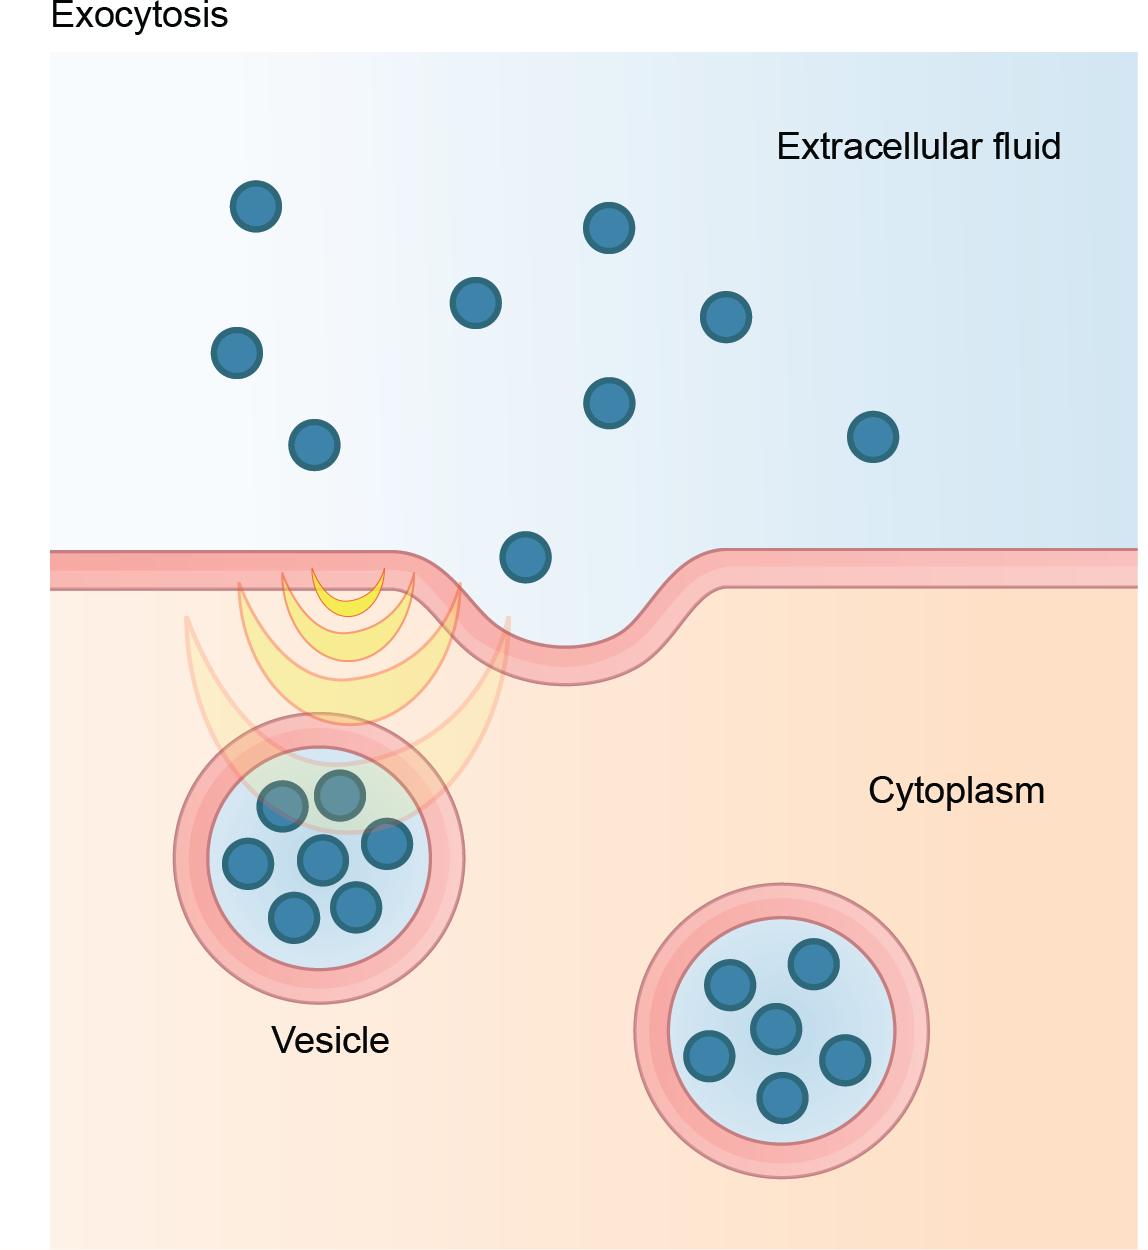 This illustration shows vesicles fusing with the plasma membrane and releasing their contents to the extracellular fluid.